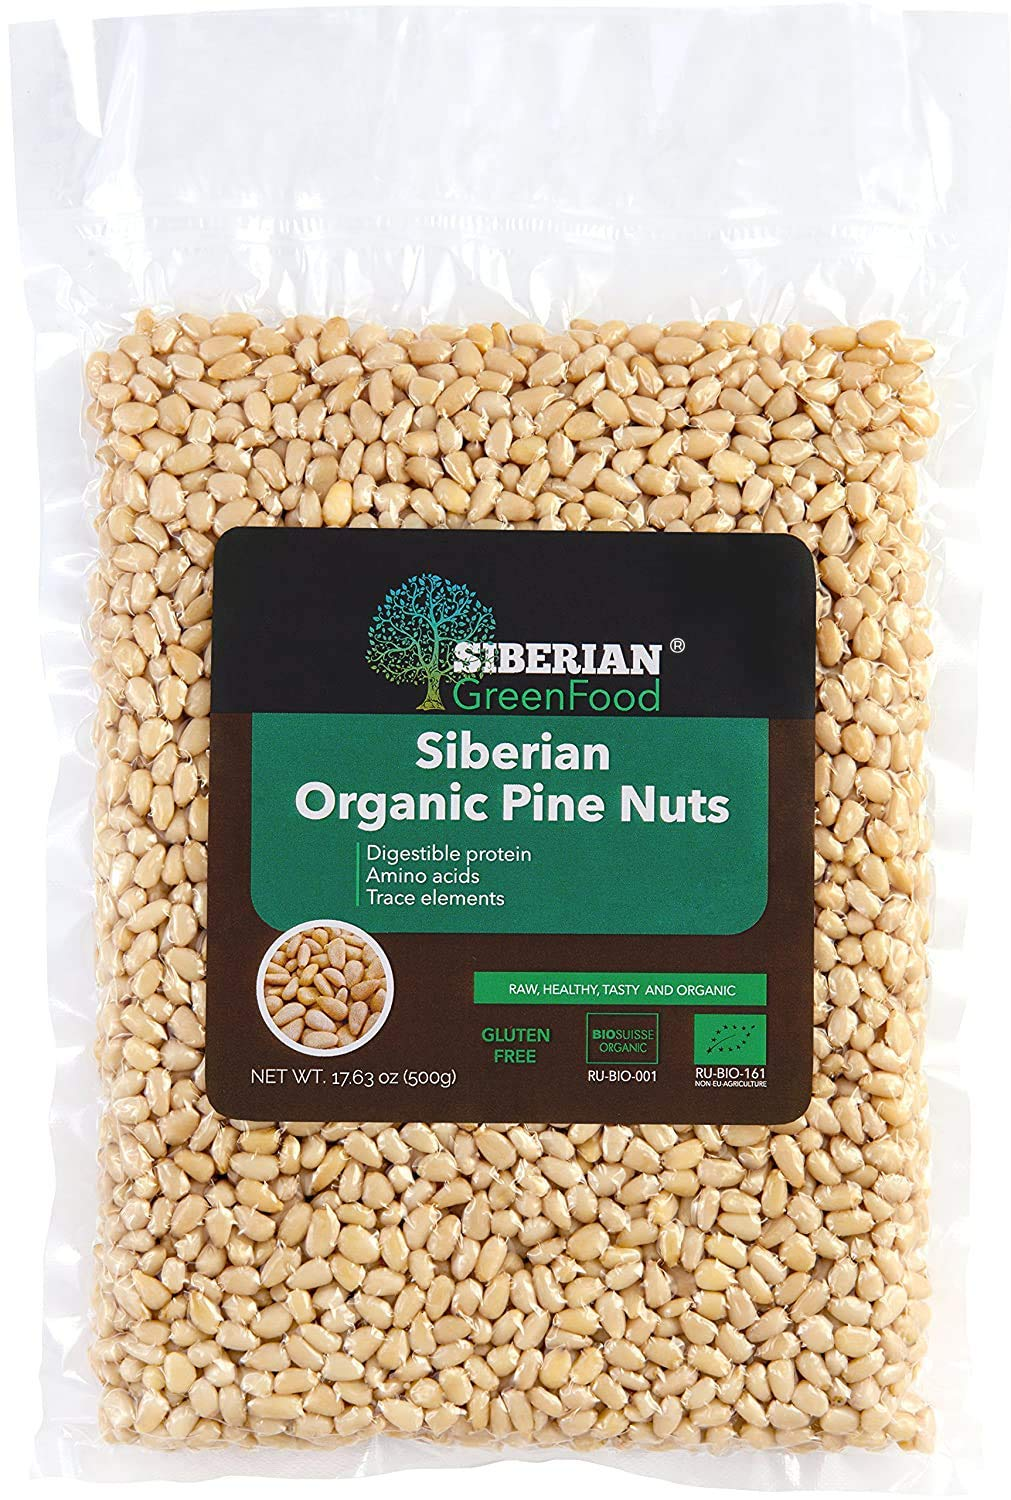 Organic Siberian Pine Nuts, Premium Quality, Vacuum Packed by Siberian Green Food 500gr/17.63oz, European Organic Certificate.